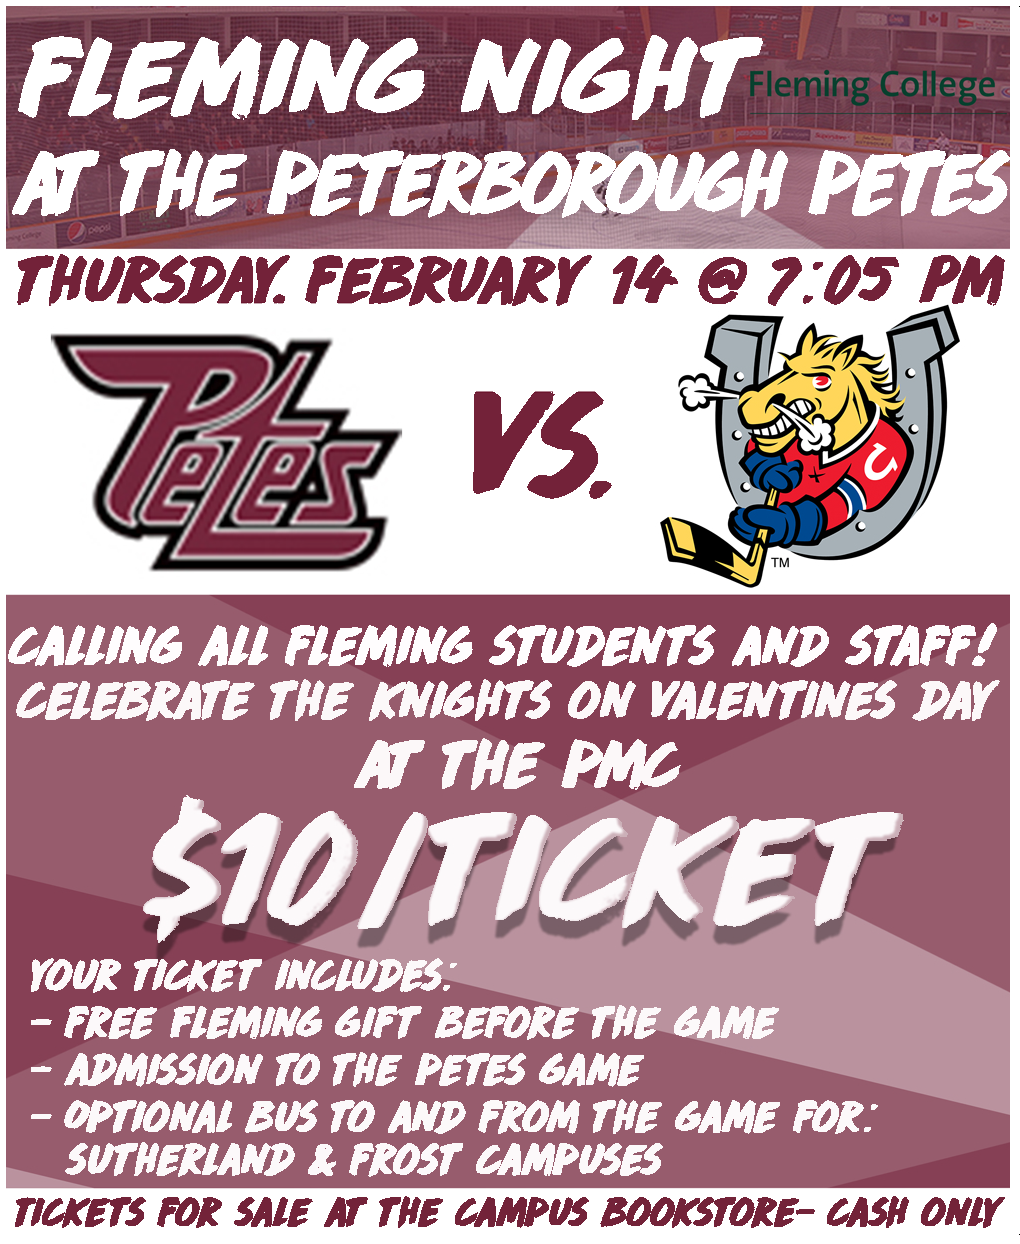 Feb 14 7PM Fleming Night at the Petes.png